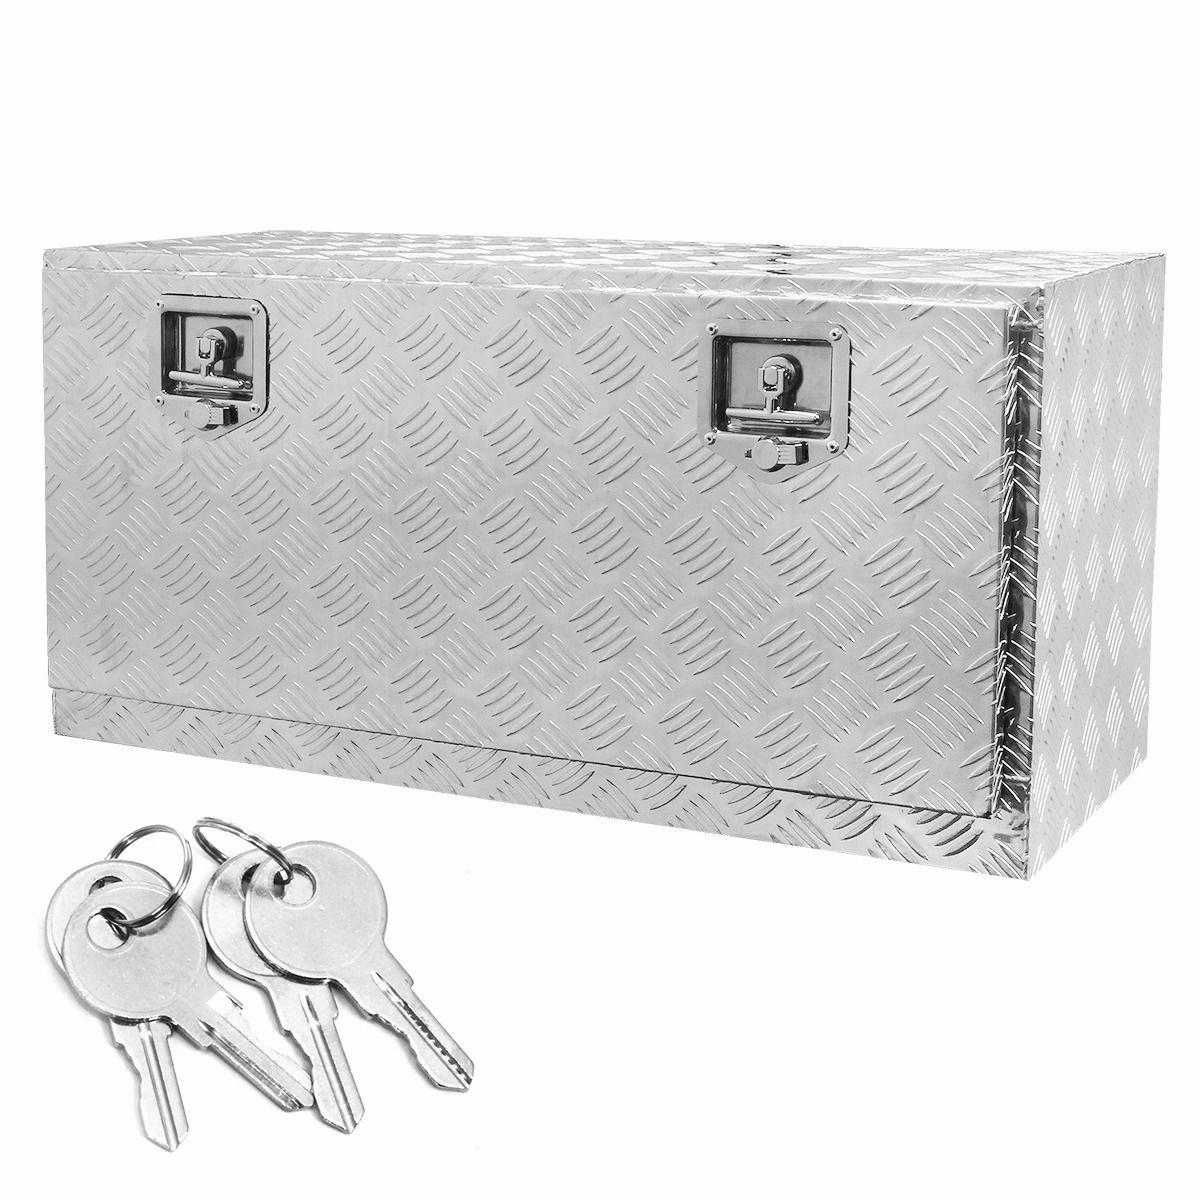 35.8'' Aluminum Truck Underbody Tool Box Trailer RV Tool Storage Under Bed w/Lock